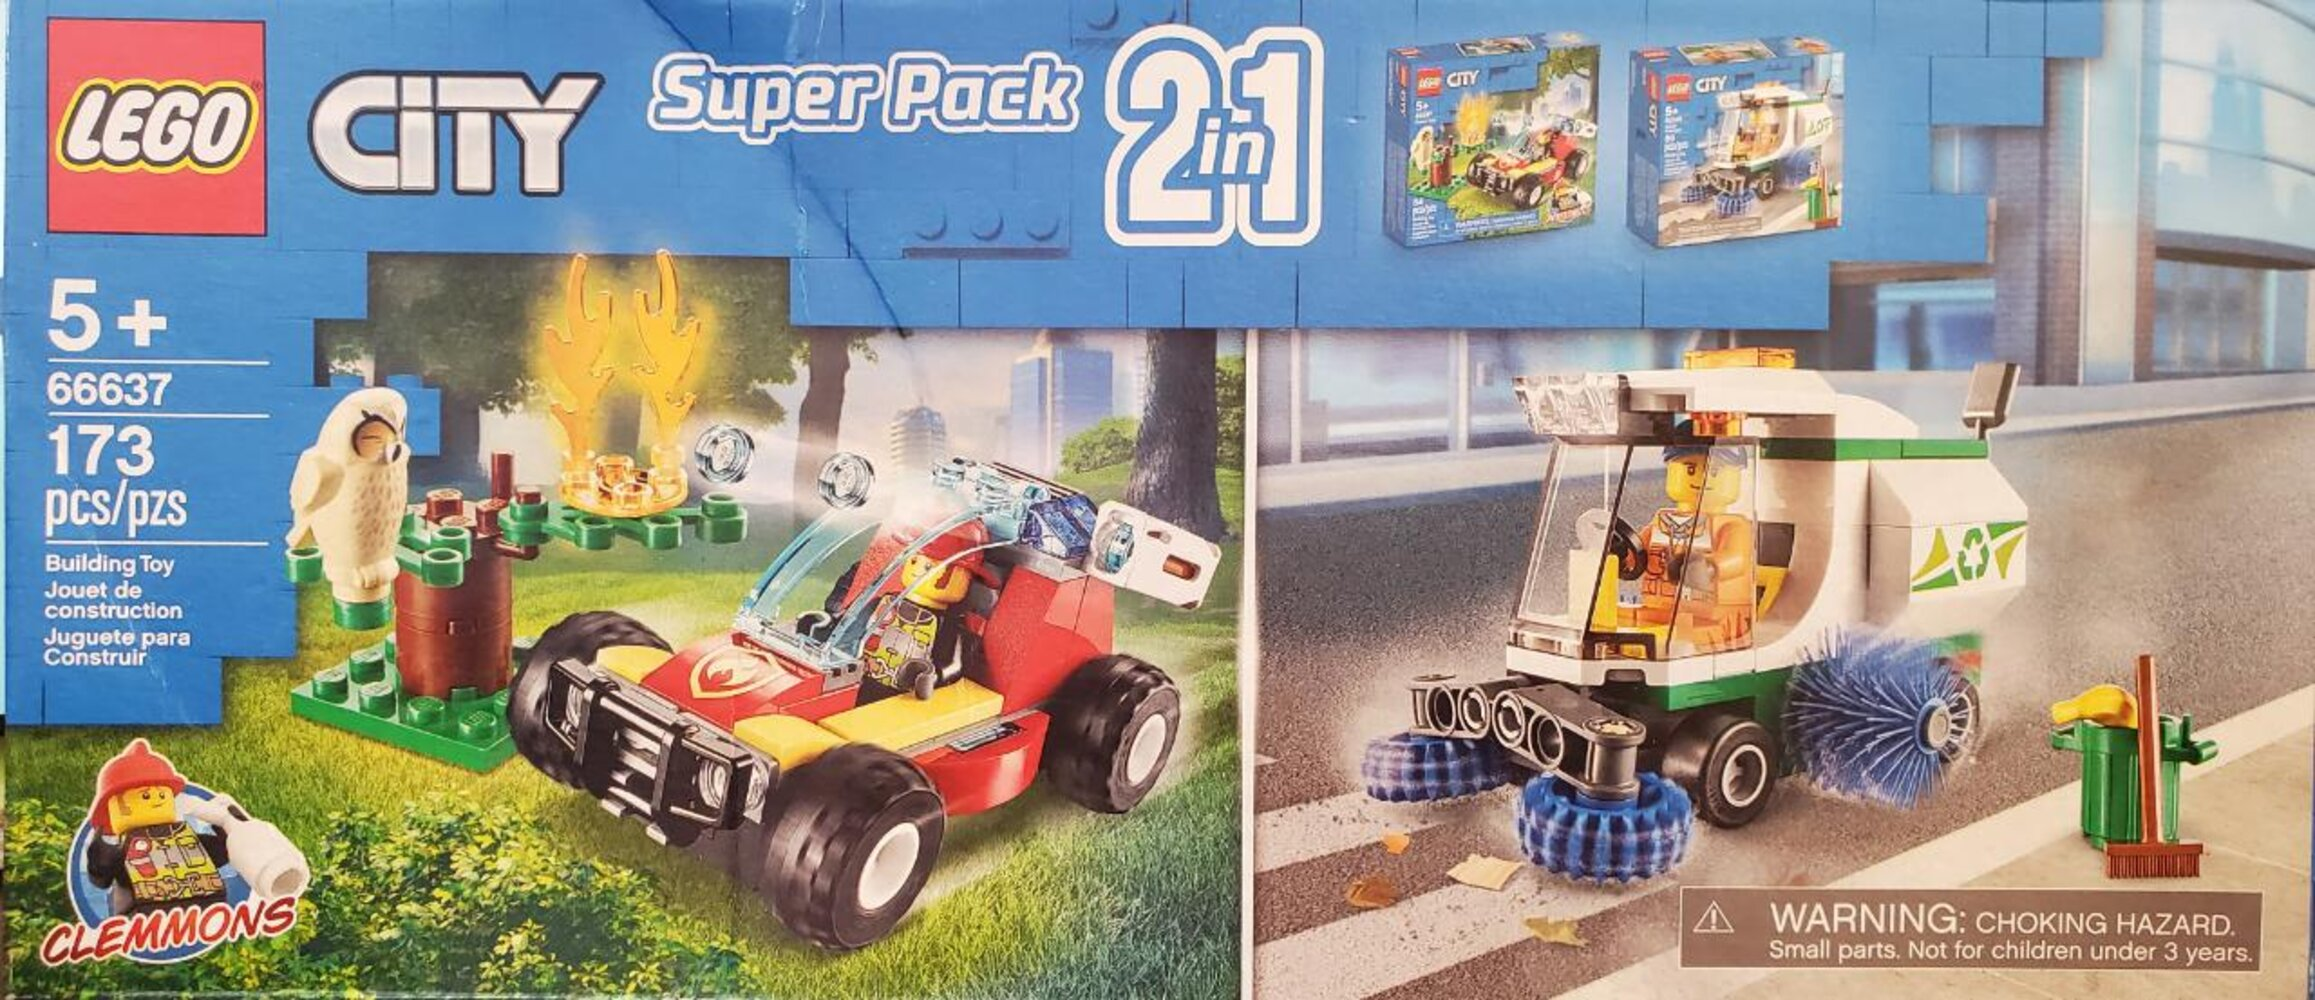 City Super Pack 2 in 1